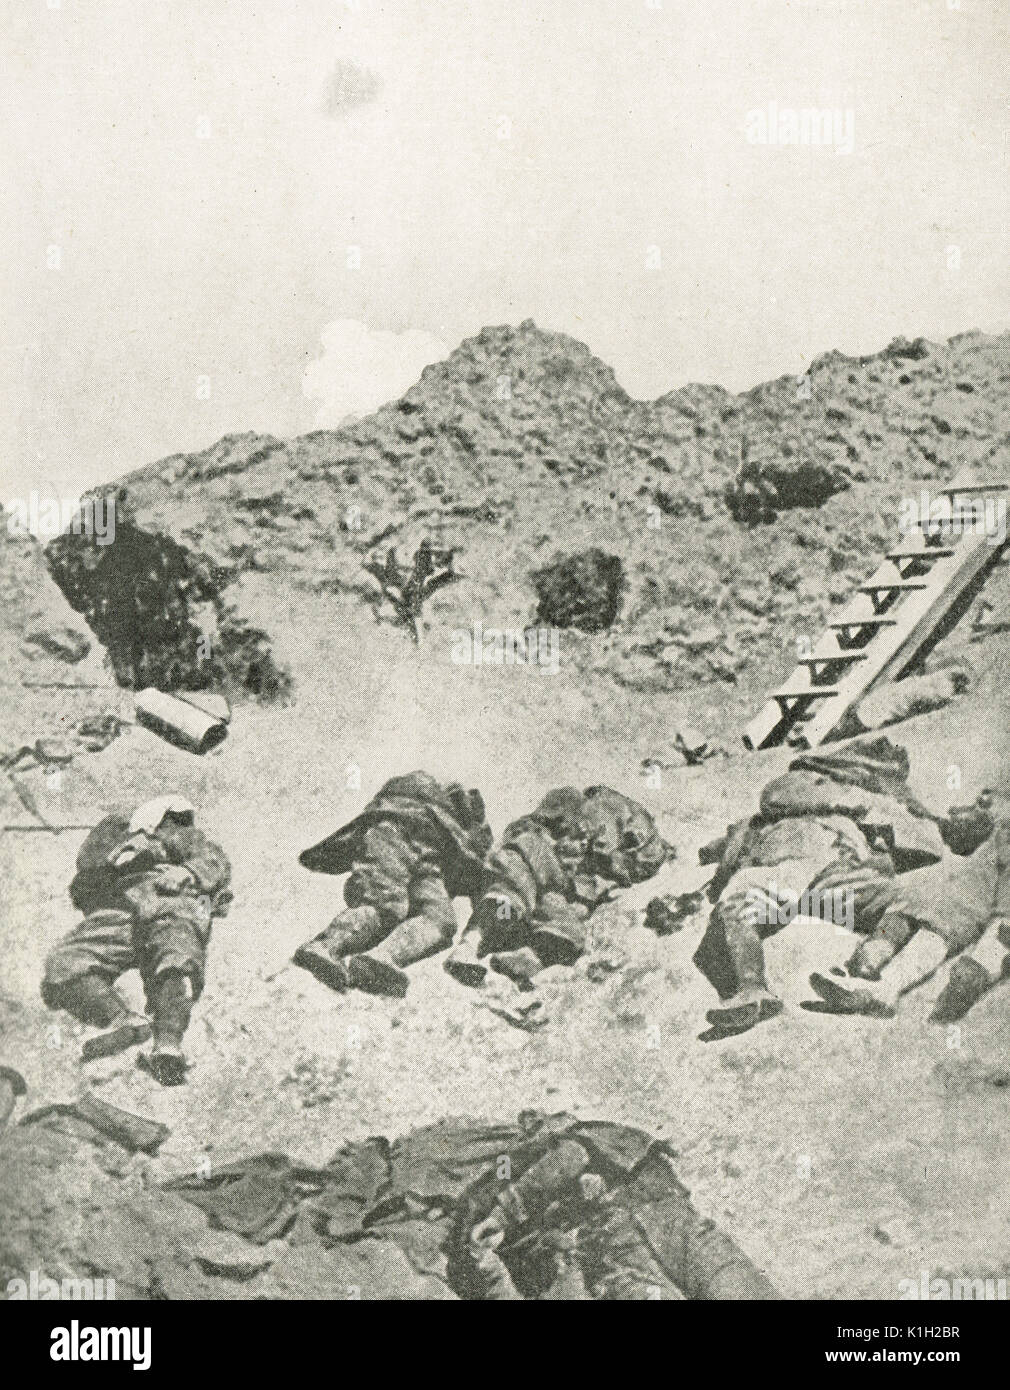 German troops killed by French 75 guns, WW1 - Stock Image